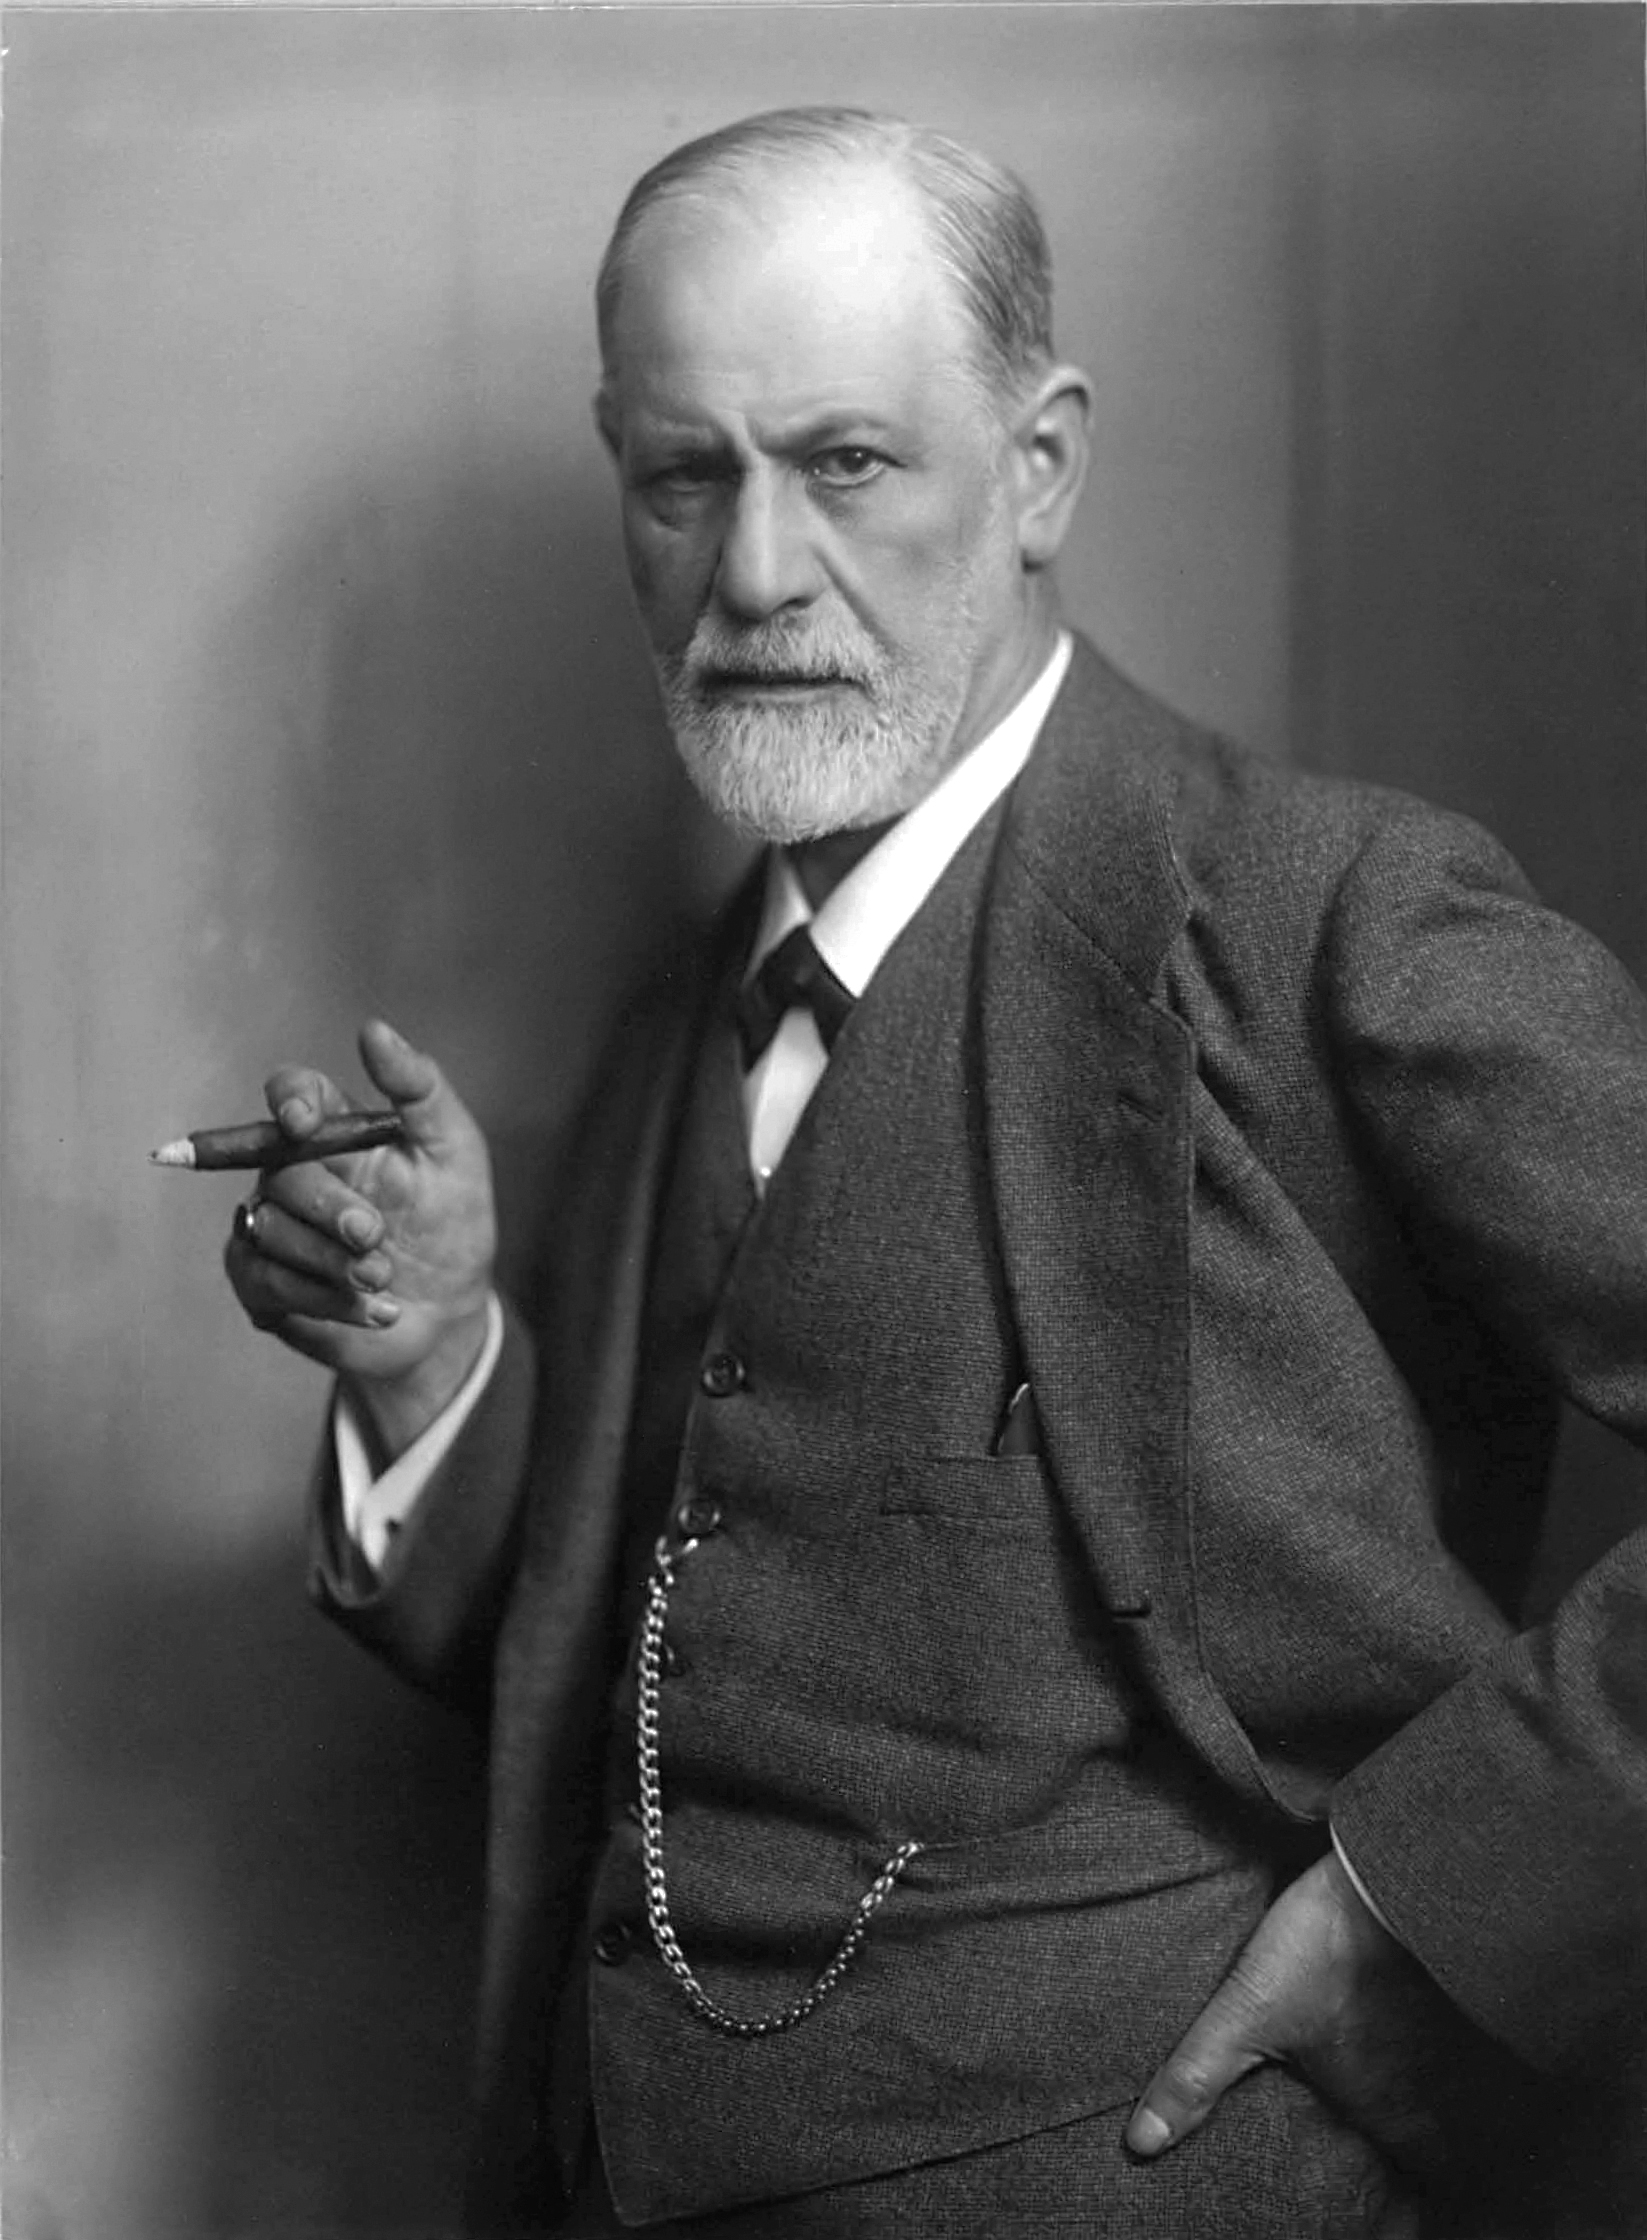 freud three essays on sexuality read online Sigmund freud, josef breuer,  these three essays could have remained unwrittendefending your dissertation powerpoint sigmund freud three essays on the theory of sexuality online 8th grade essay prompts persuasive essaytulip touch essay help freud three essays on sexuality read online thesis customer satisfaction critical thinking.